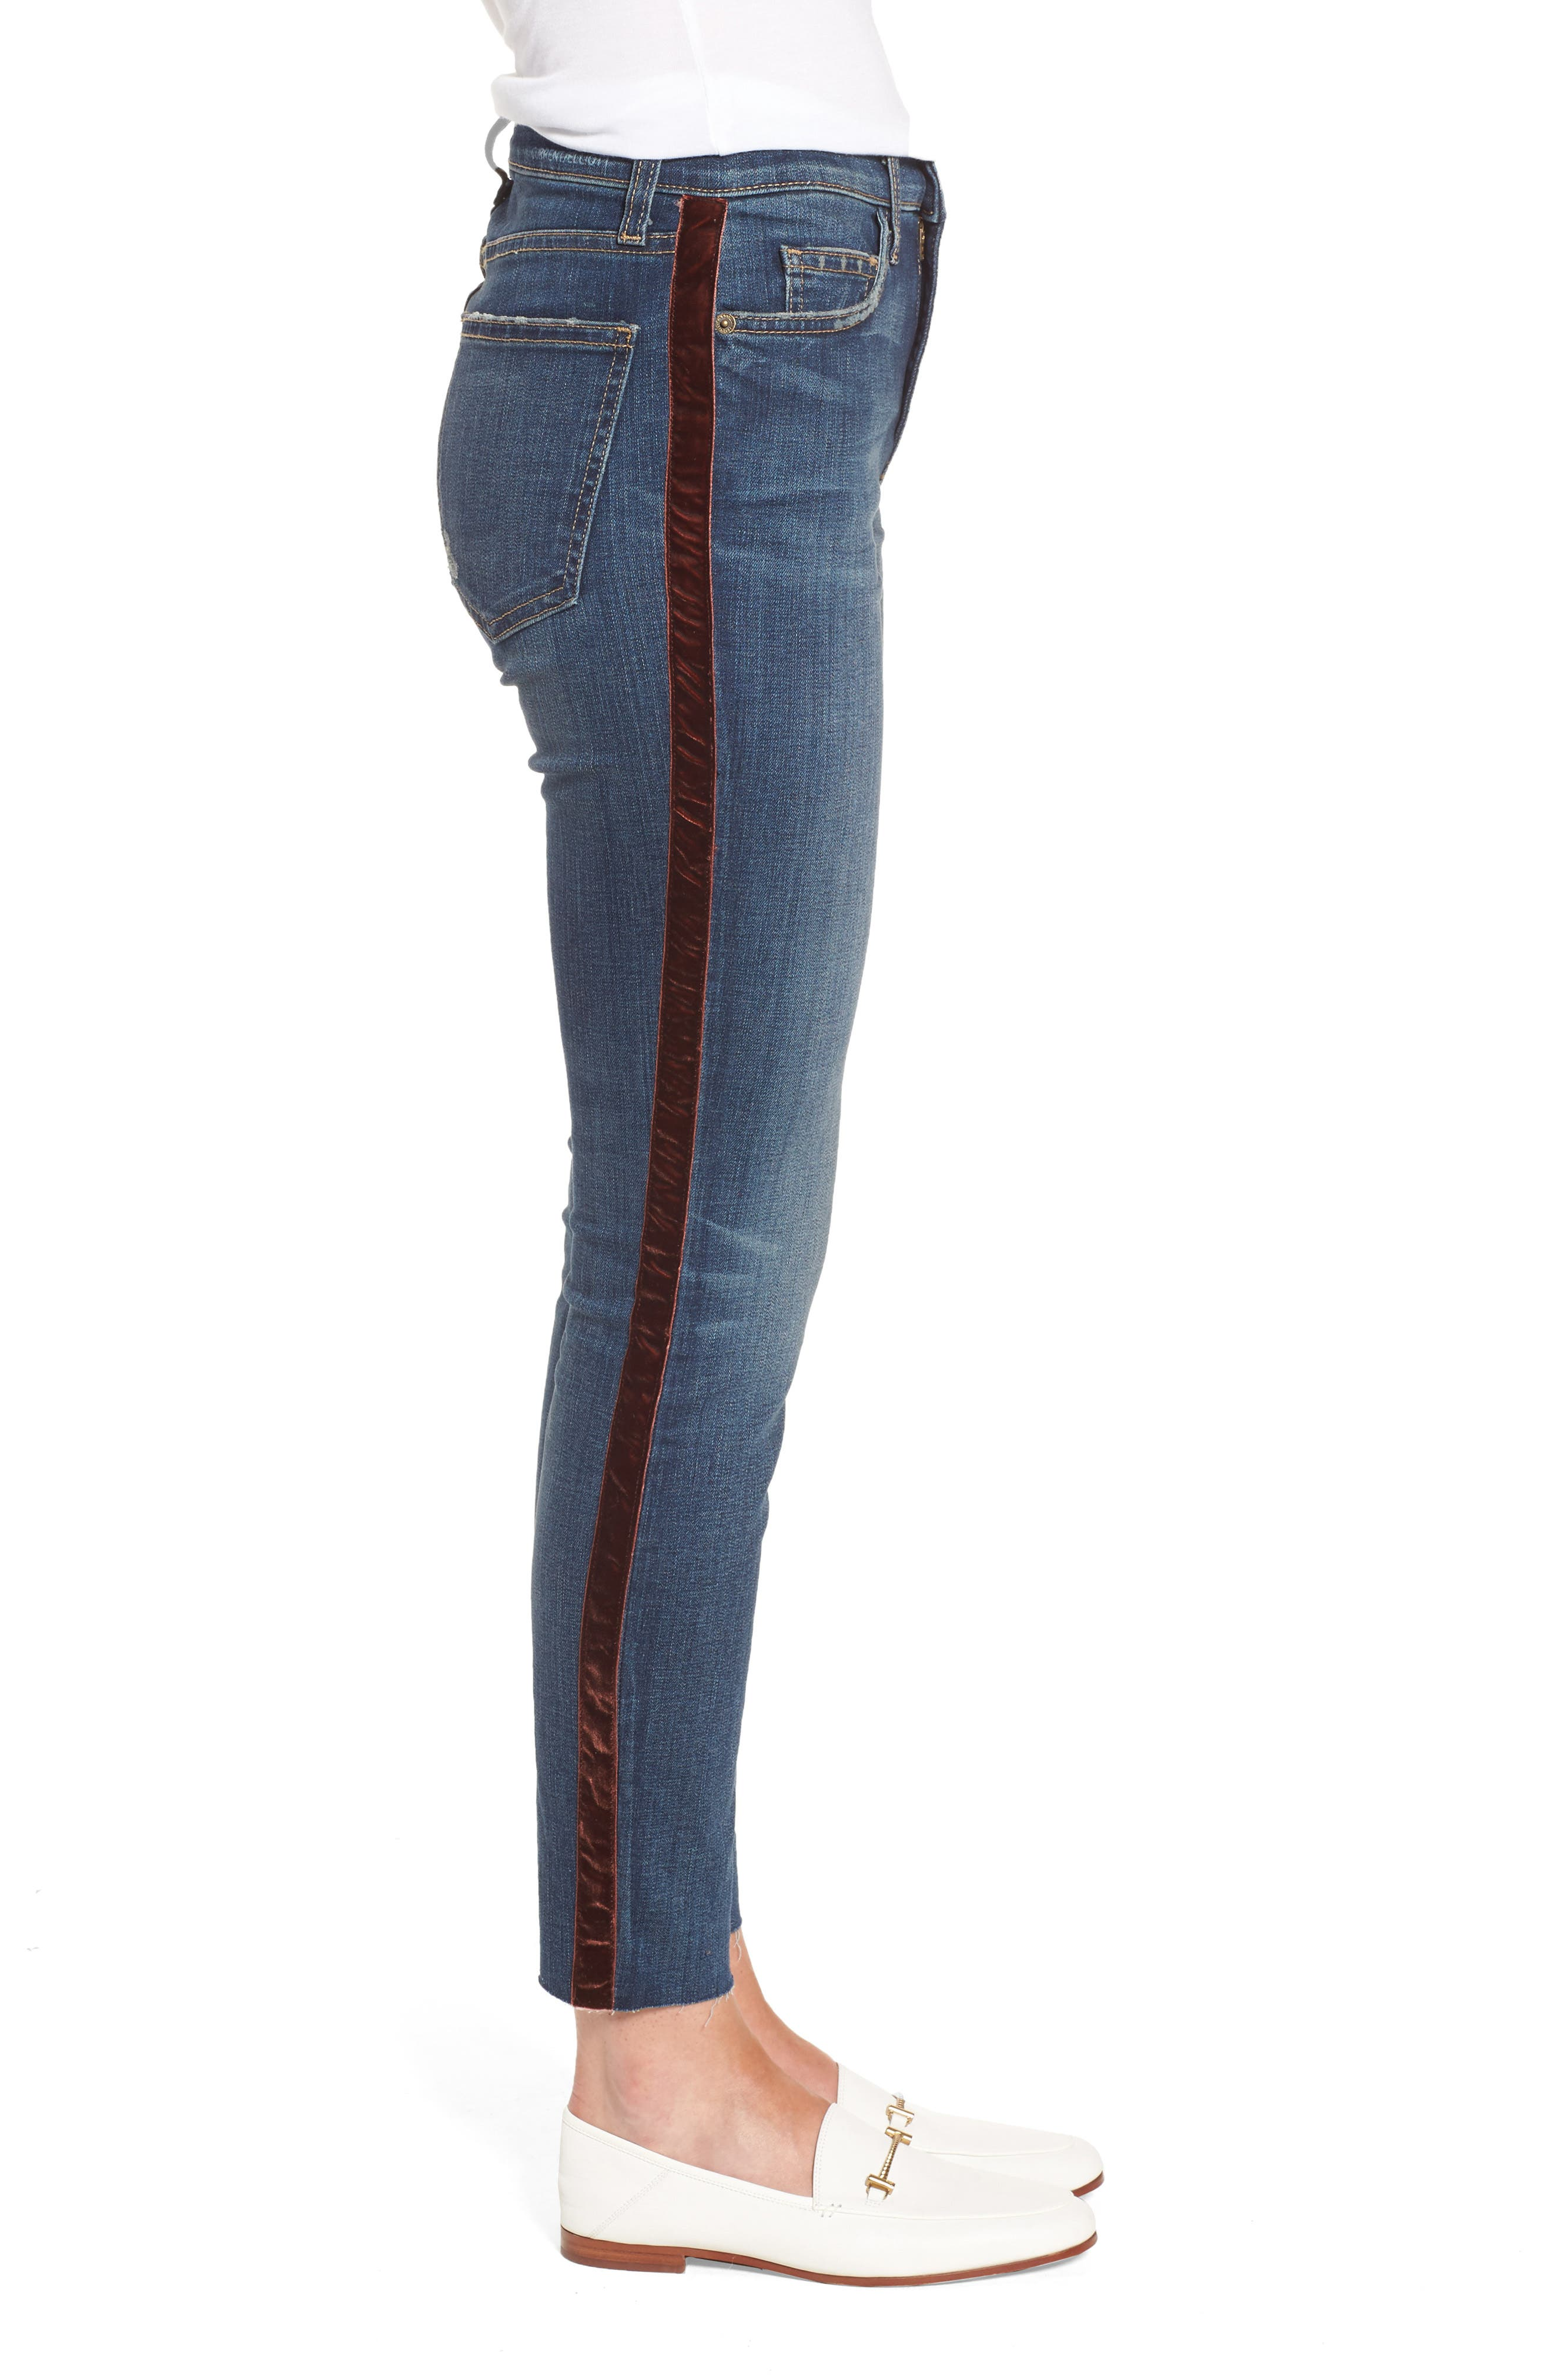 Alternate Image 3  - Current/Elliott The High Waist Stiletto Ankle Skinny Jeans (Townie)